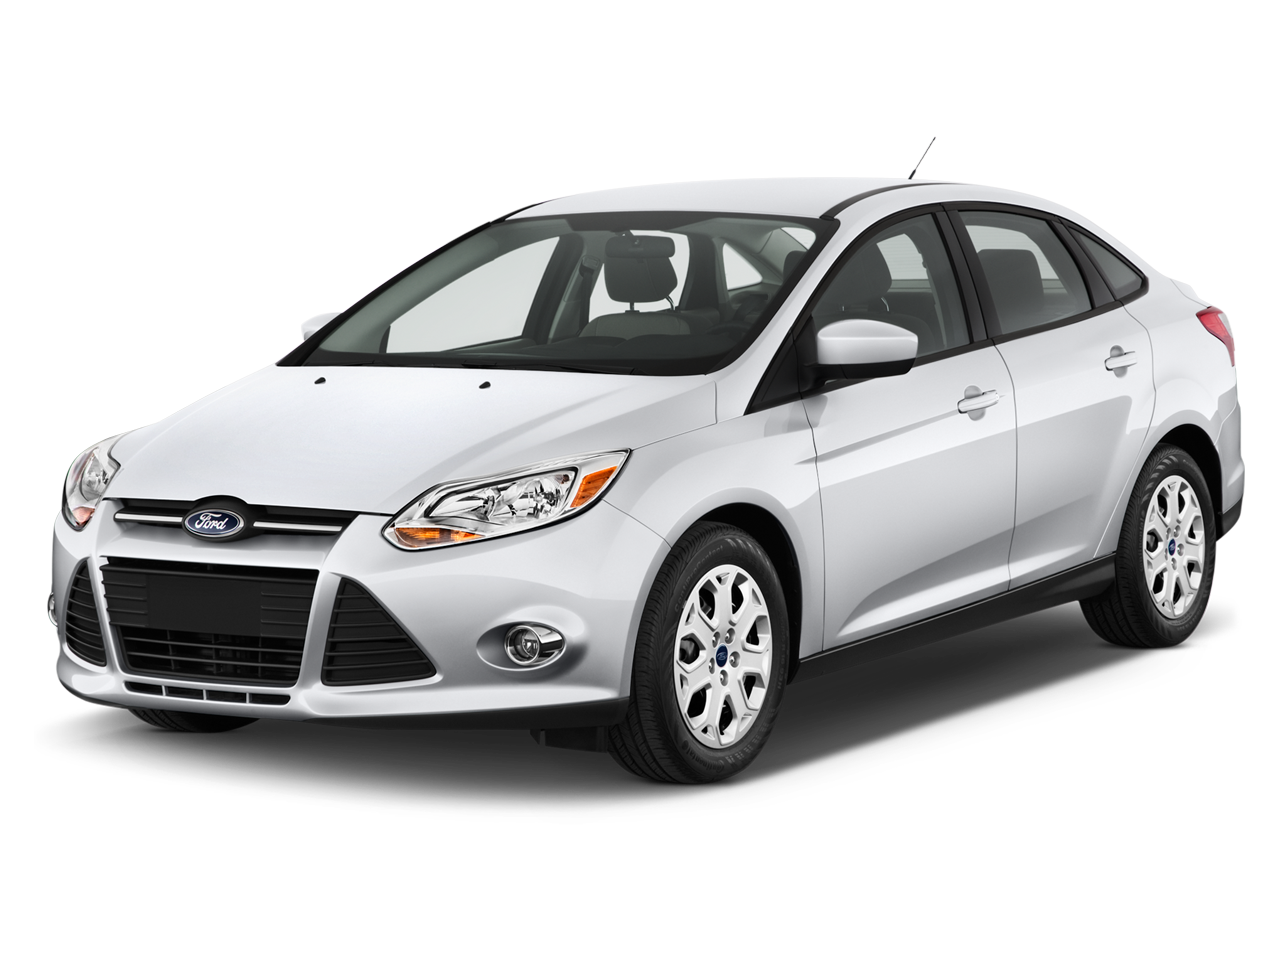 Ford focus png. Image autopedia fandom powered